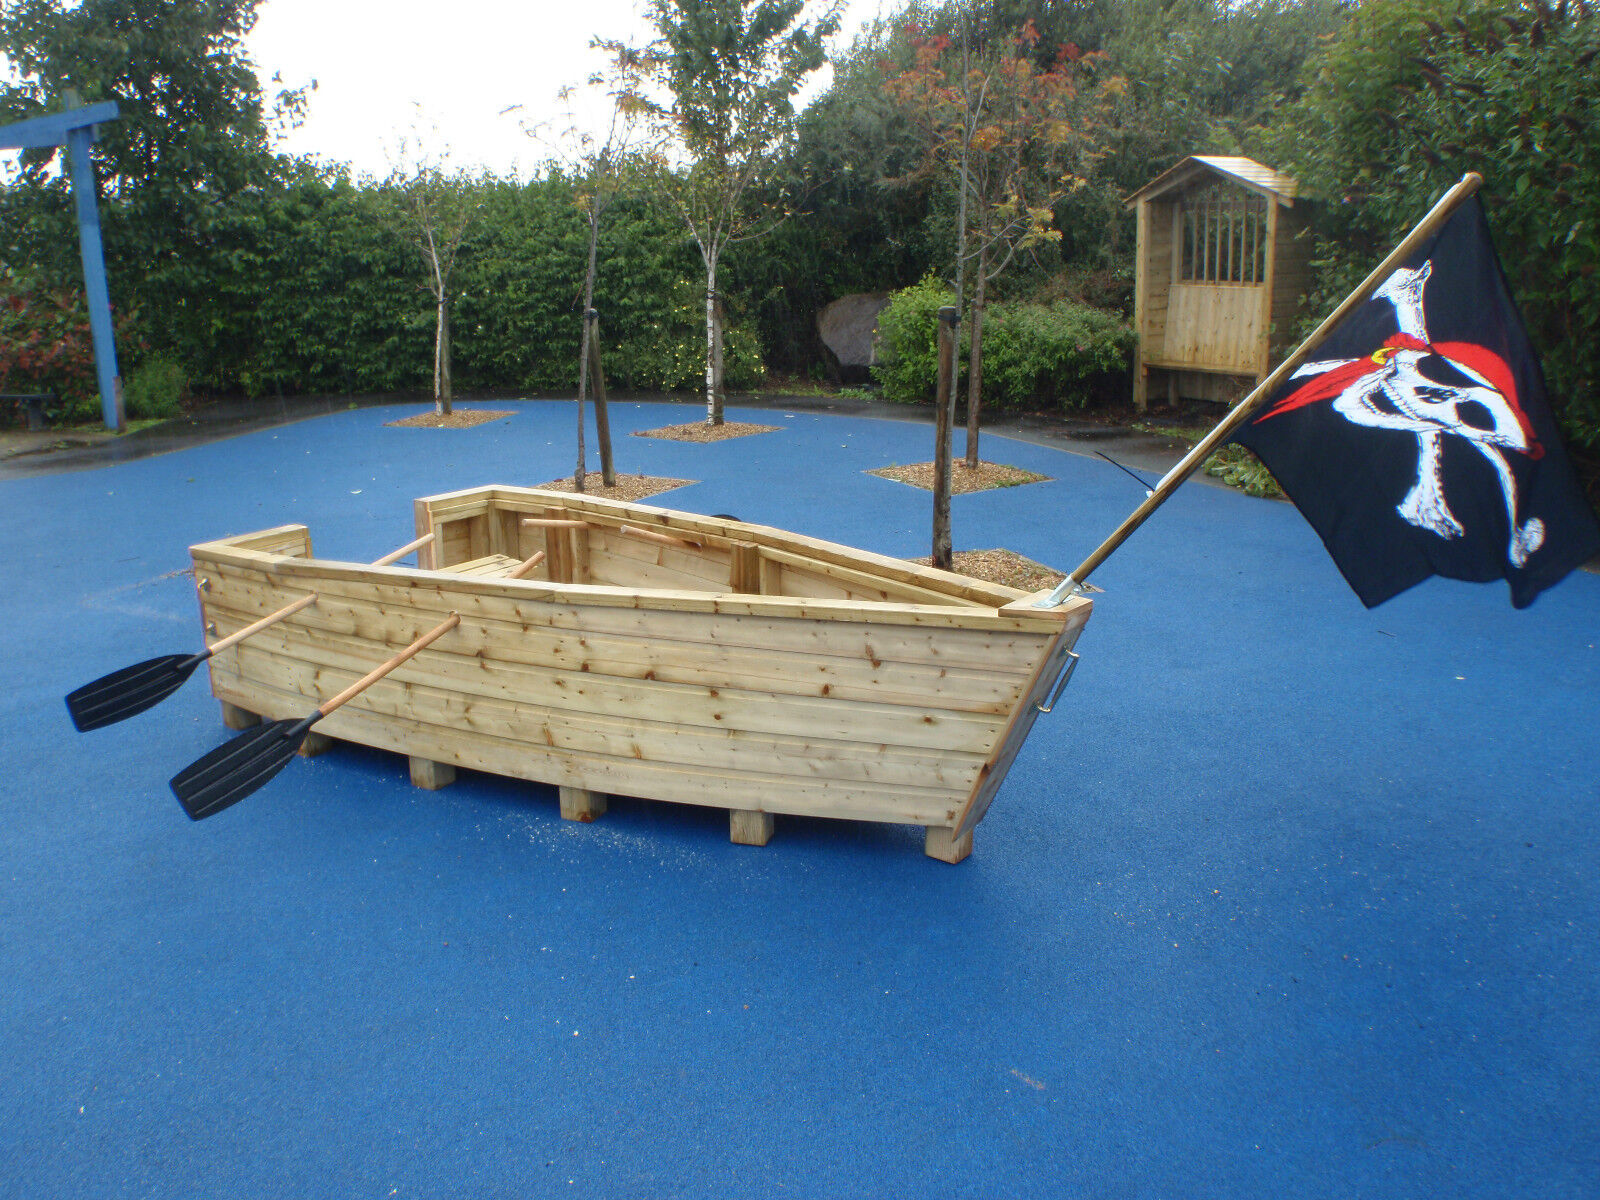 Pirate ship boat wooden playgroup creche playground - Wooden pirate ship outdoor ...